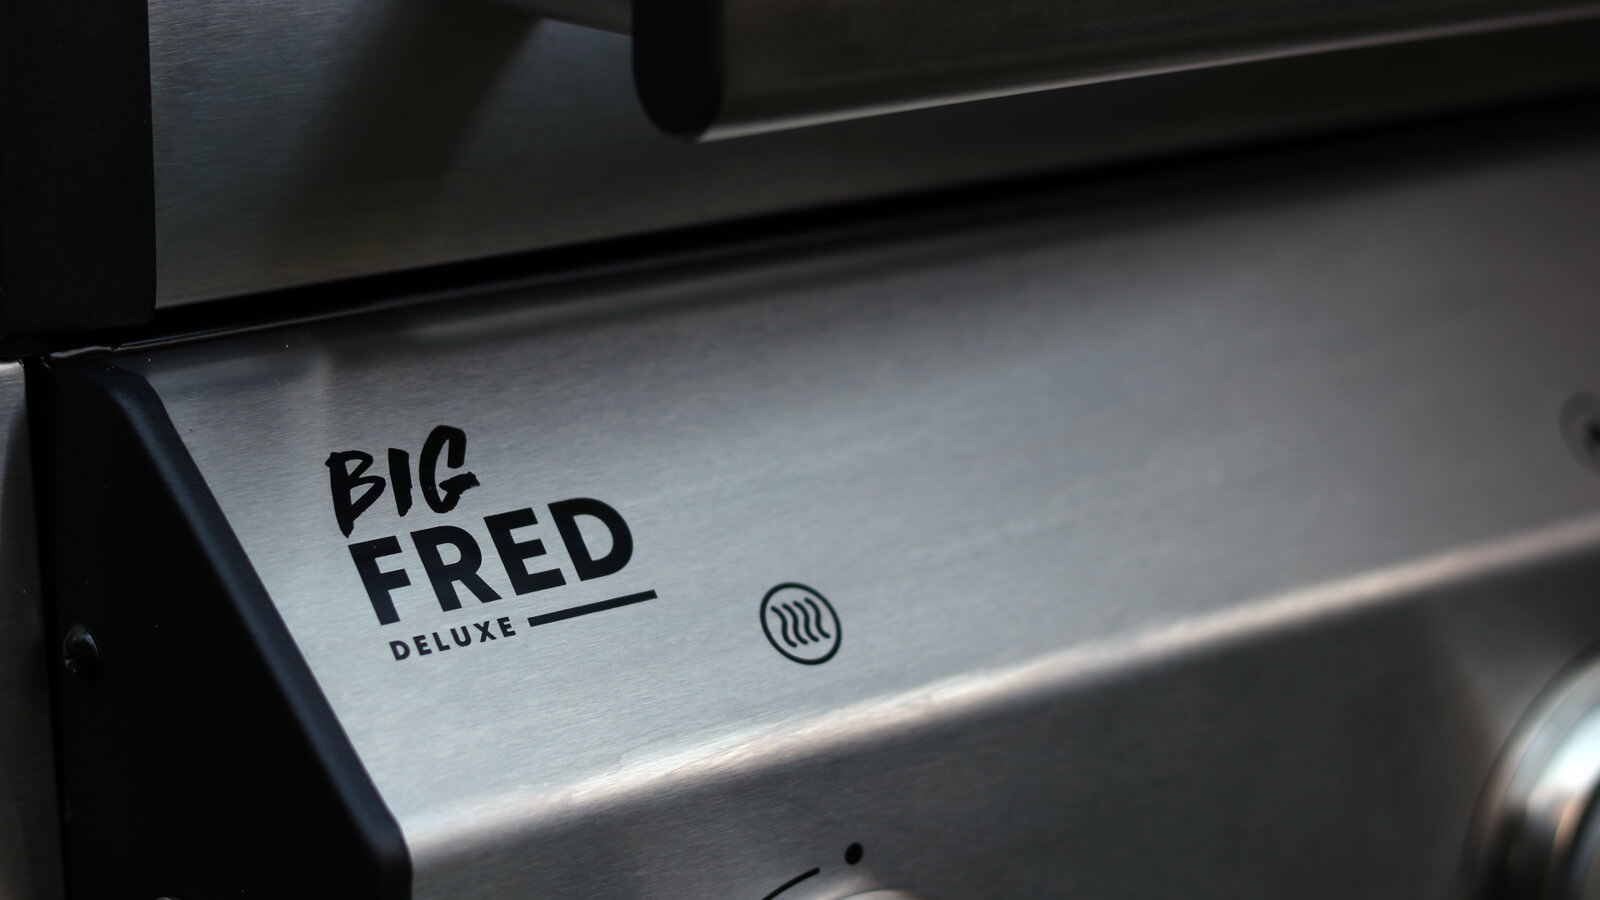 Review Burnhard Big Fred Deluxe Gas BBQ